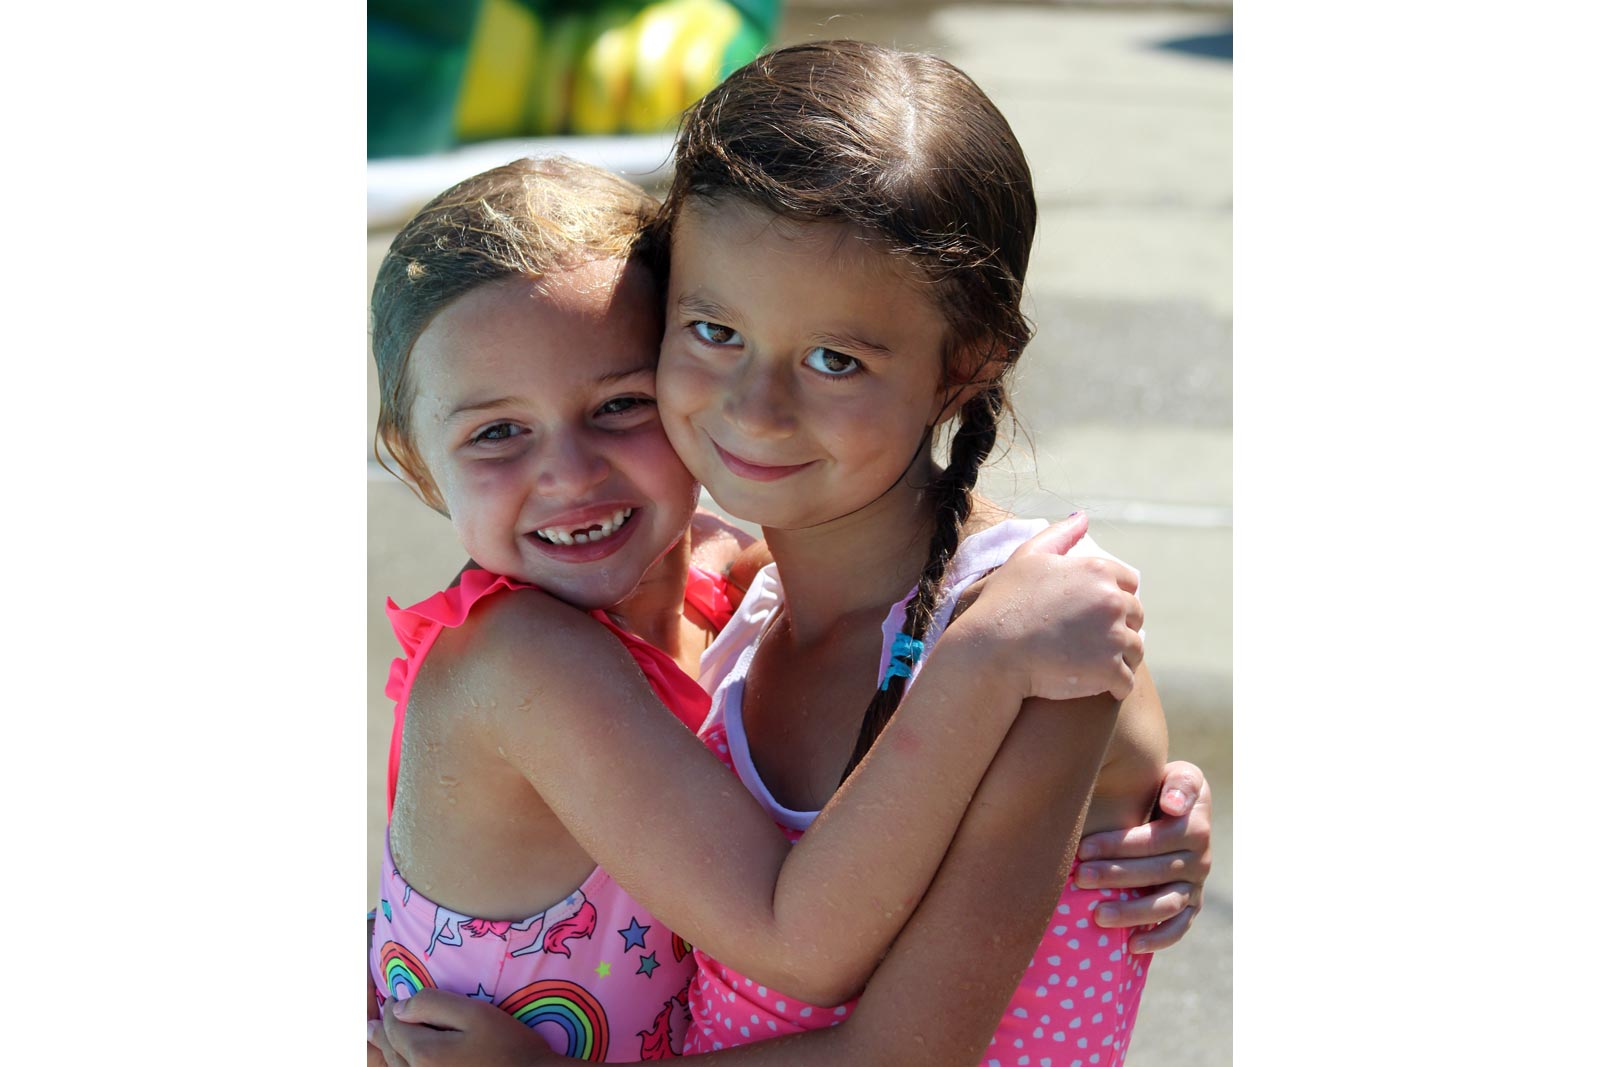 Summer Camp Friendship in Bergen County, NJ